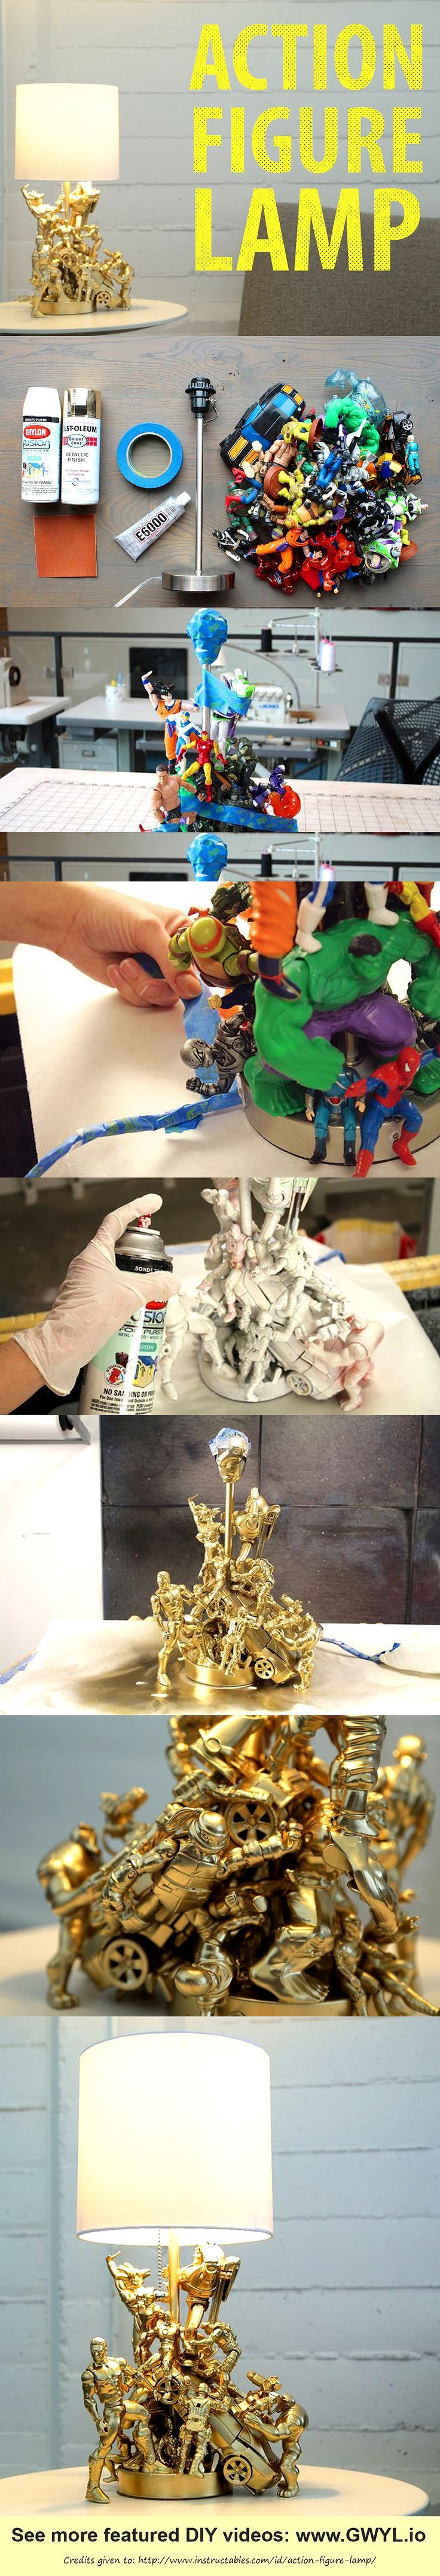 When you just can't let go of these toys especially your beloved action figures, might as well upcycle them to something more useful. Here's a project that will surely be a new favorite. See video and written instructions here ==> | gwyl.io/... | Transform Your Old Toys Into This Ultra-Cool Action Figure Lamp